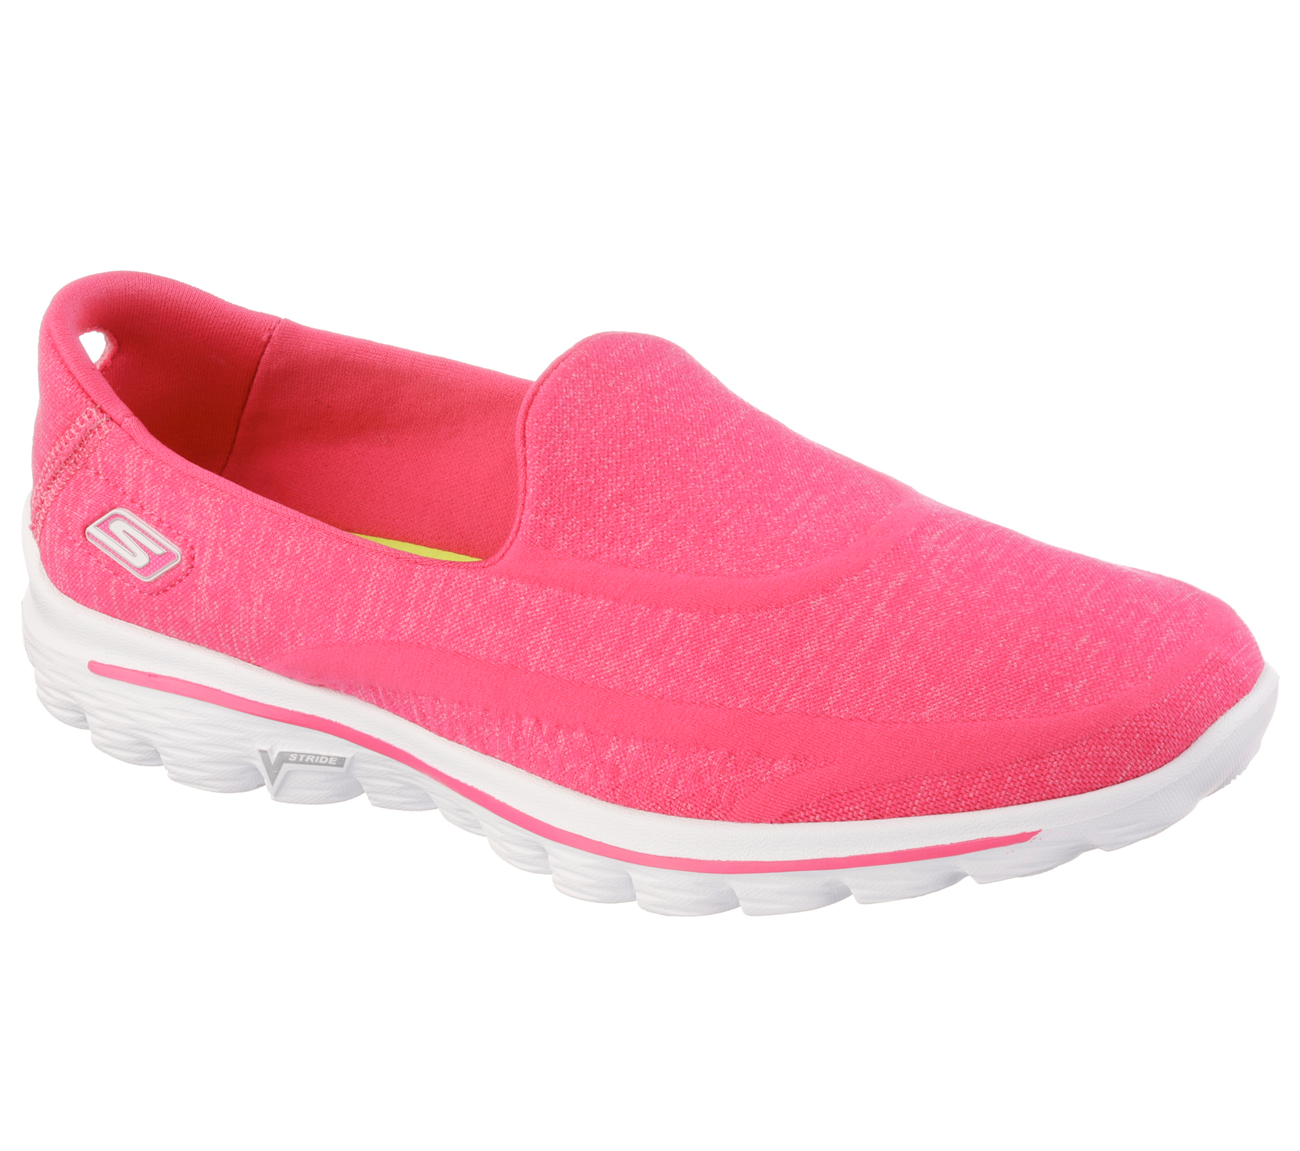 Skechers Womens Adjustable Strap Shoes - FREE Shipping & Returns